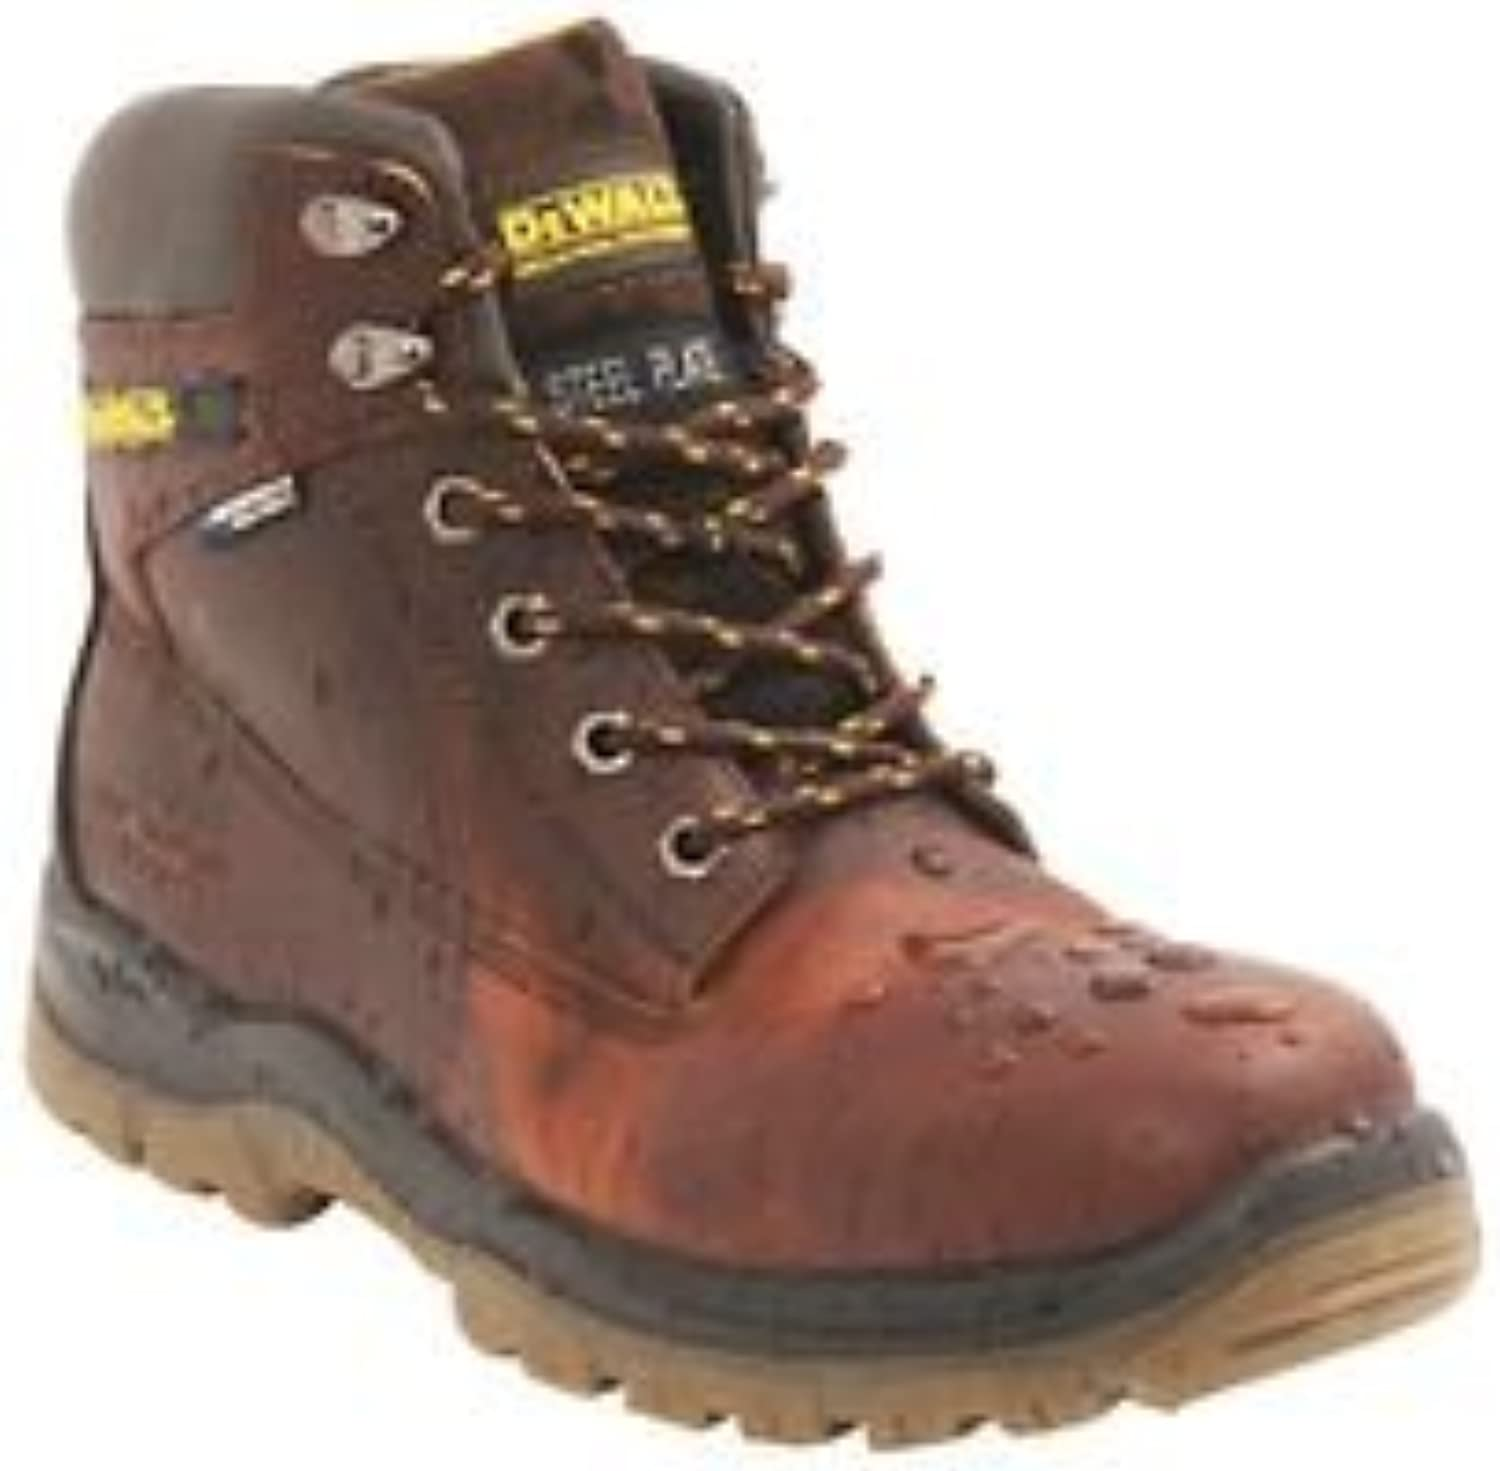 Titanium Tan 6 inch Waterproof Safety Boot, Size 8